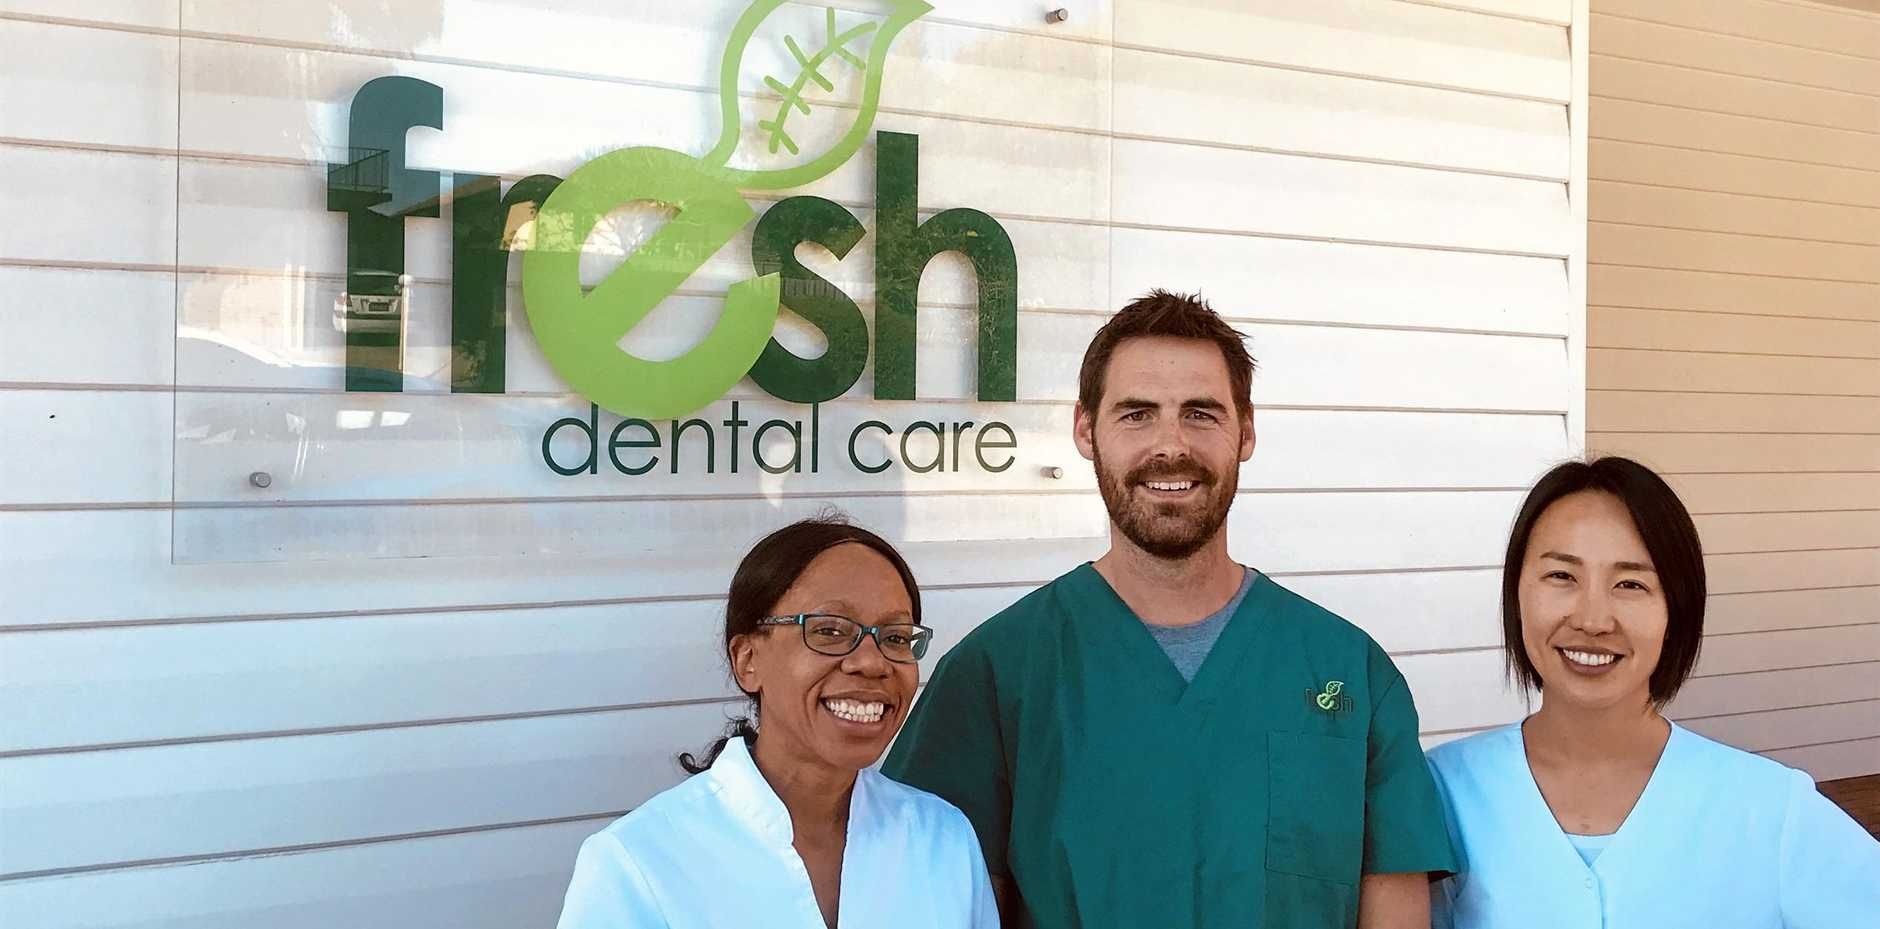 HAPPY TO HELP: Three local dentists participating in the service Dr Cecilia Mwanje, Dr Benjamin Mansell and Dr Cathy Do.